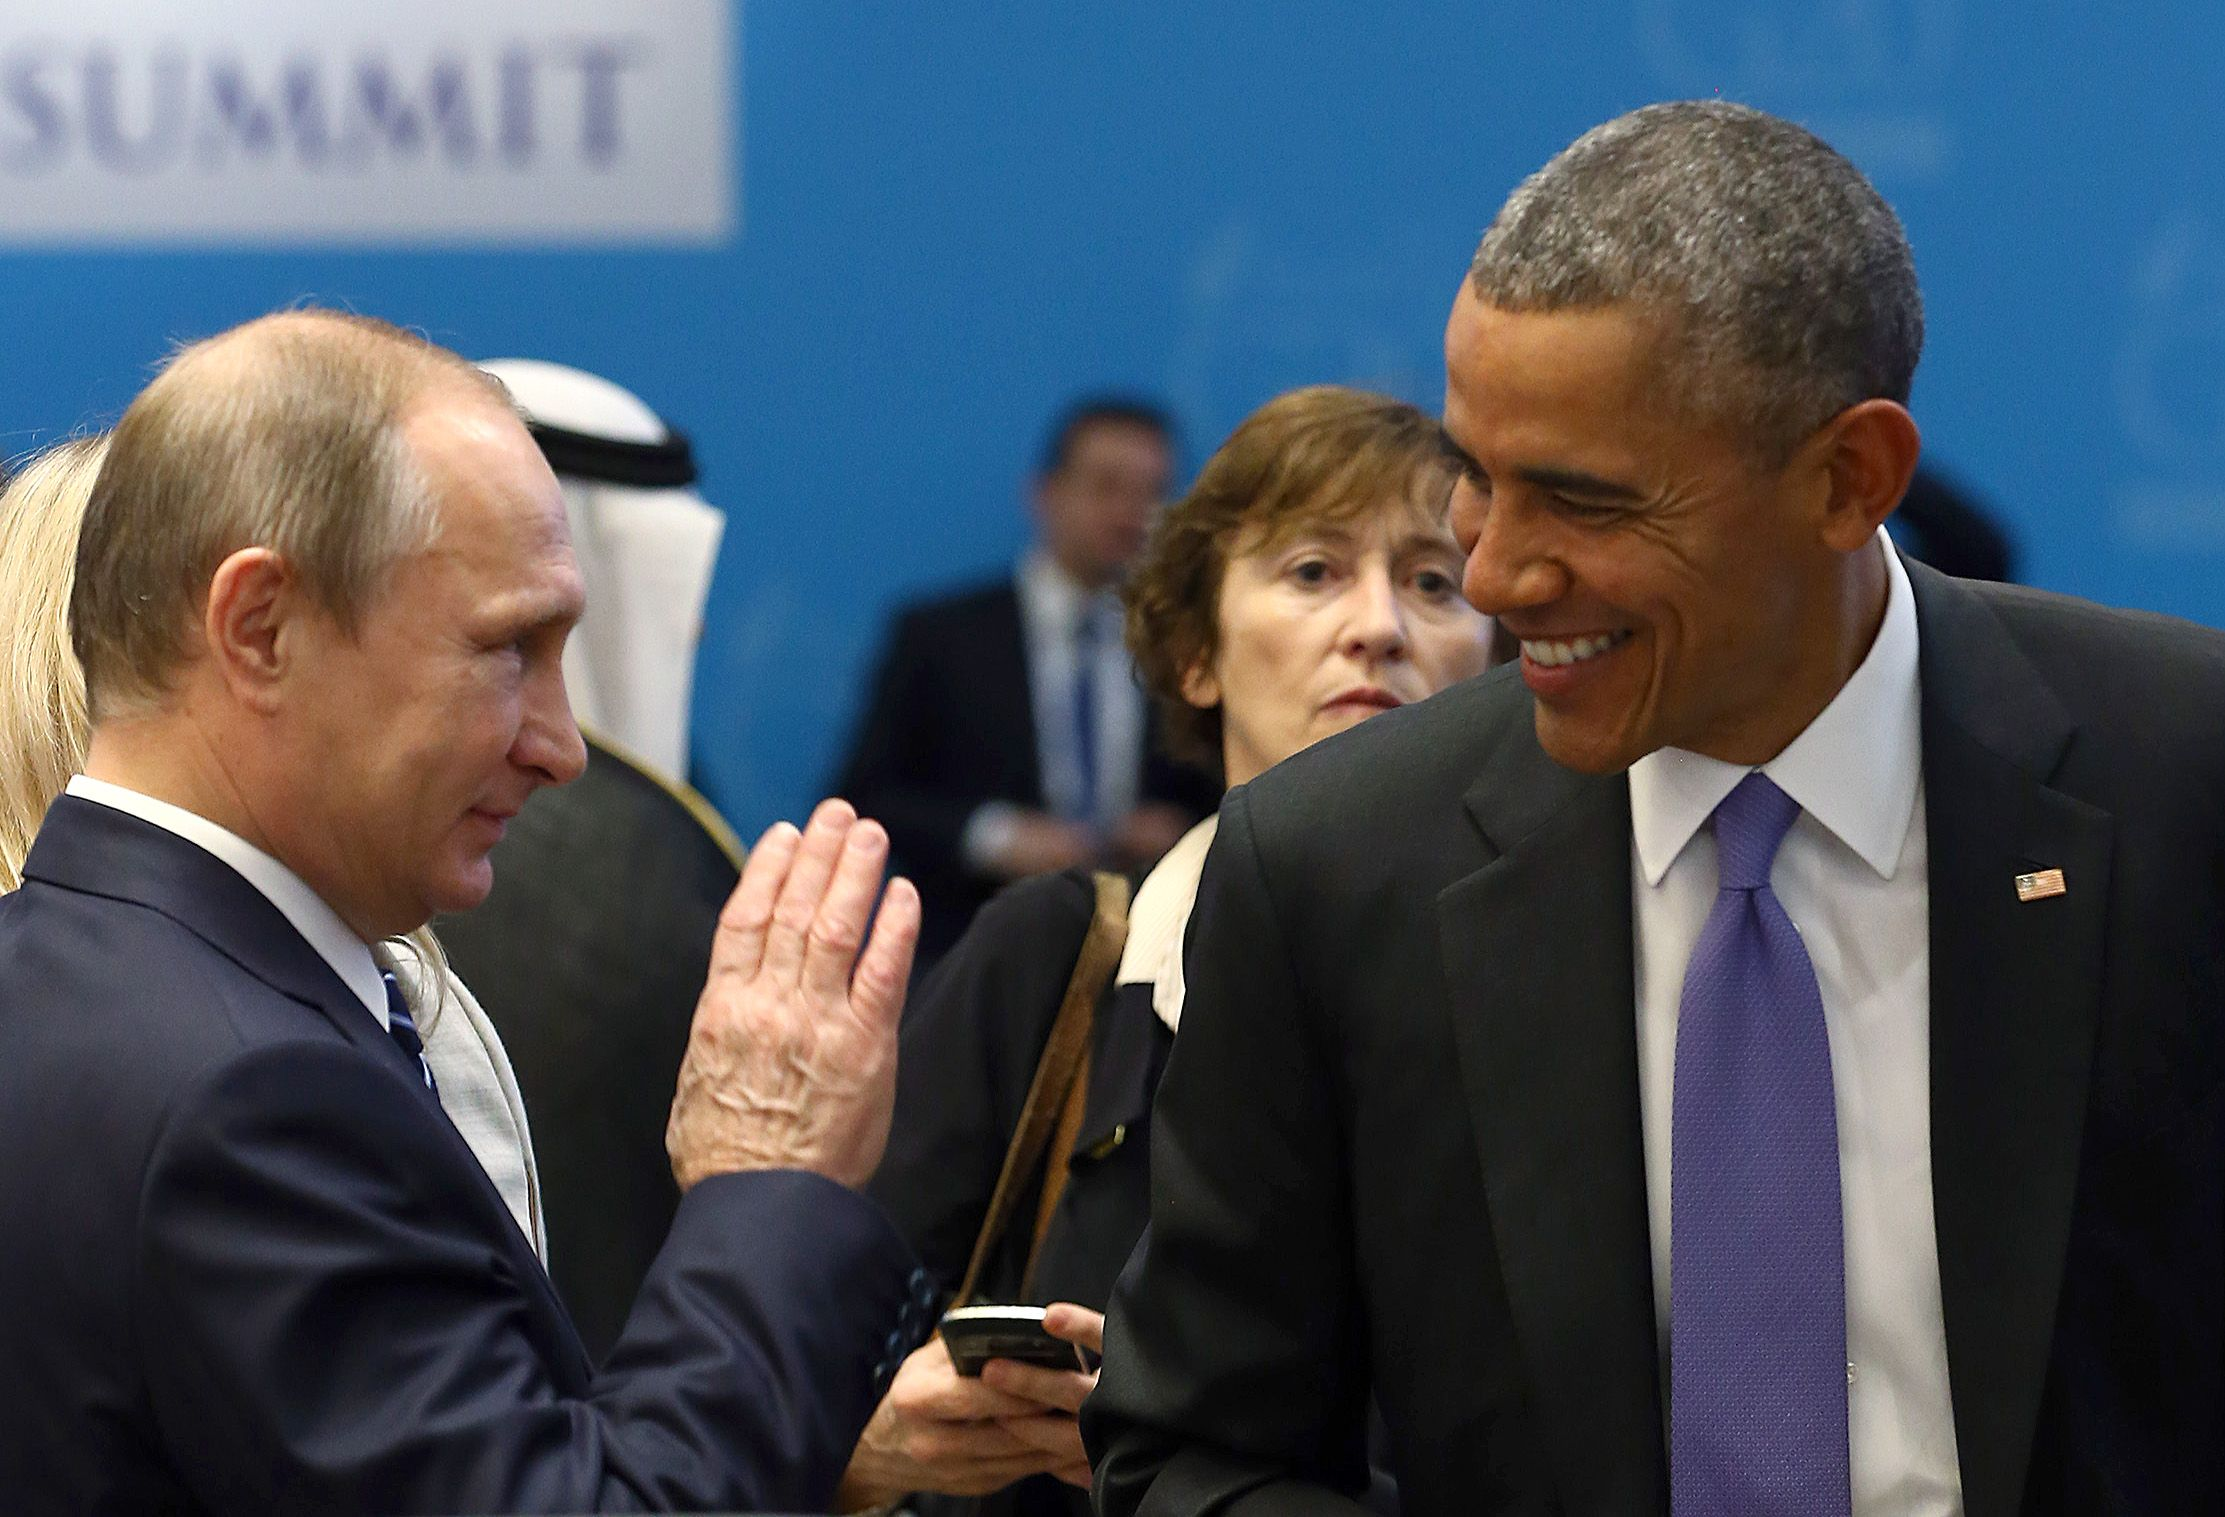 American Democrats promised Putin to hush up the situation with Crimea